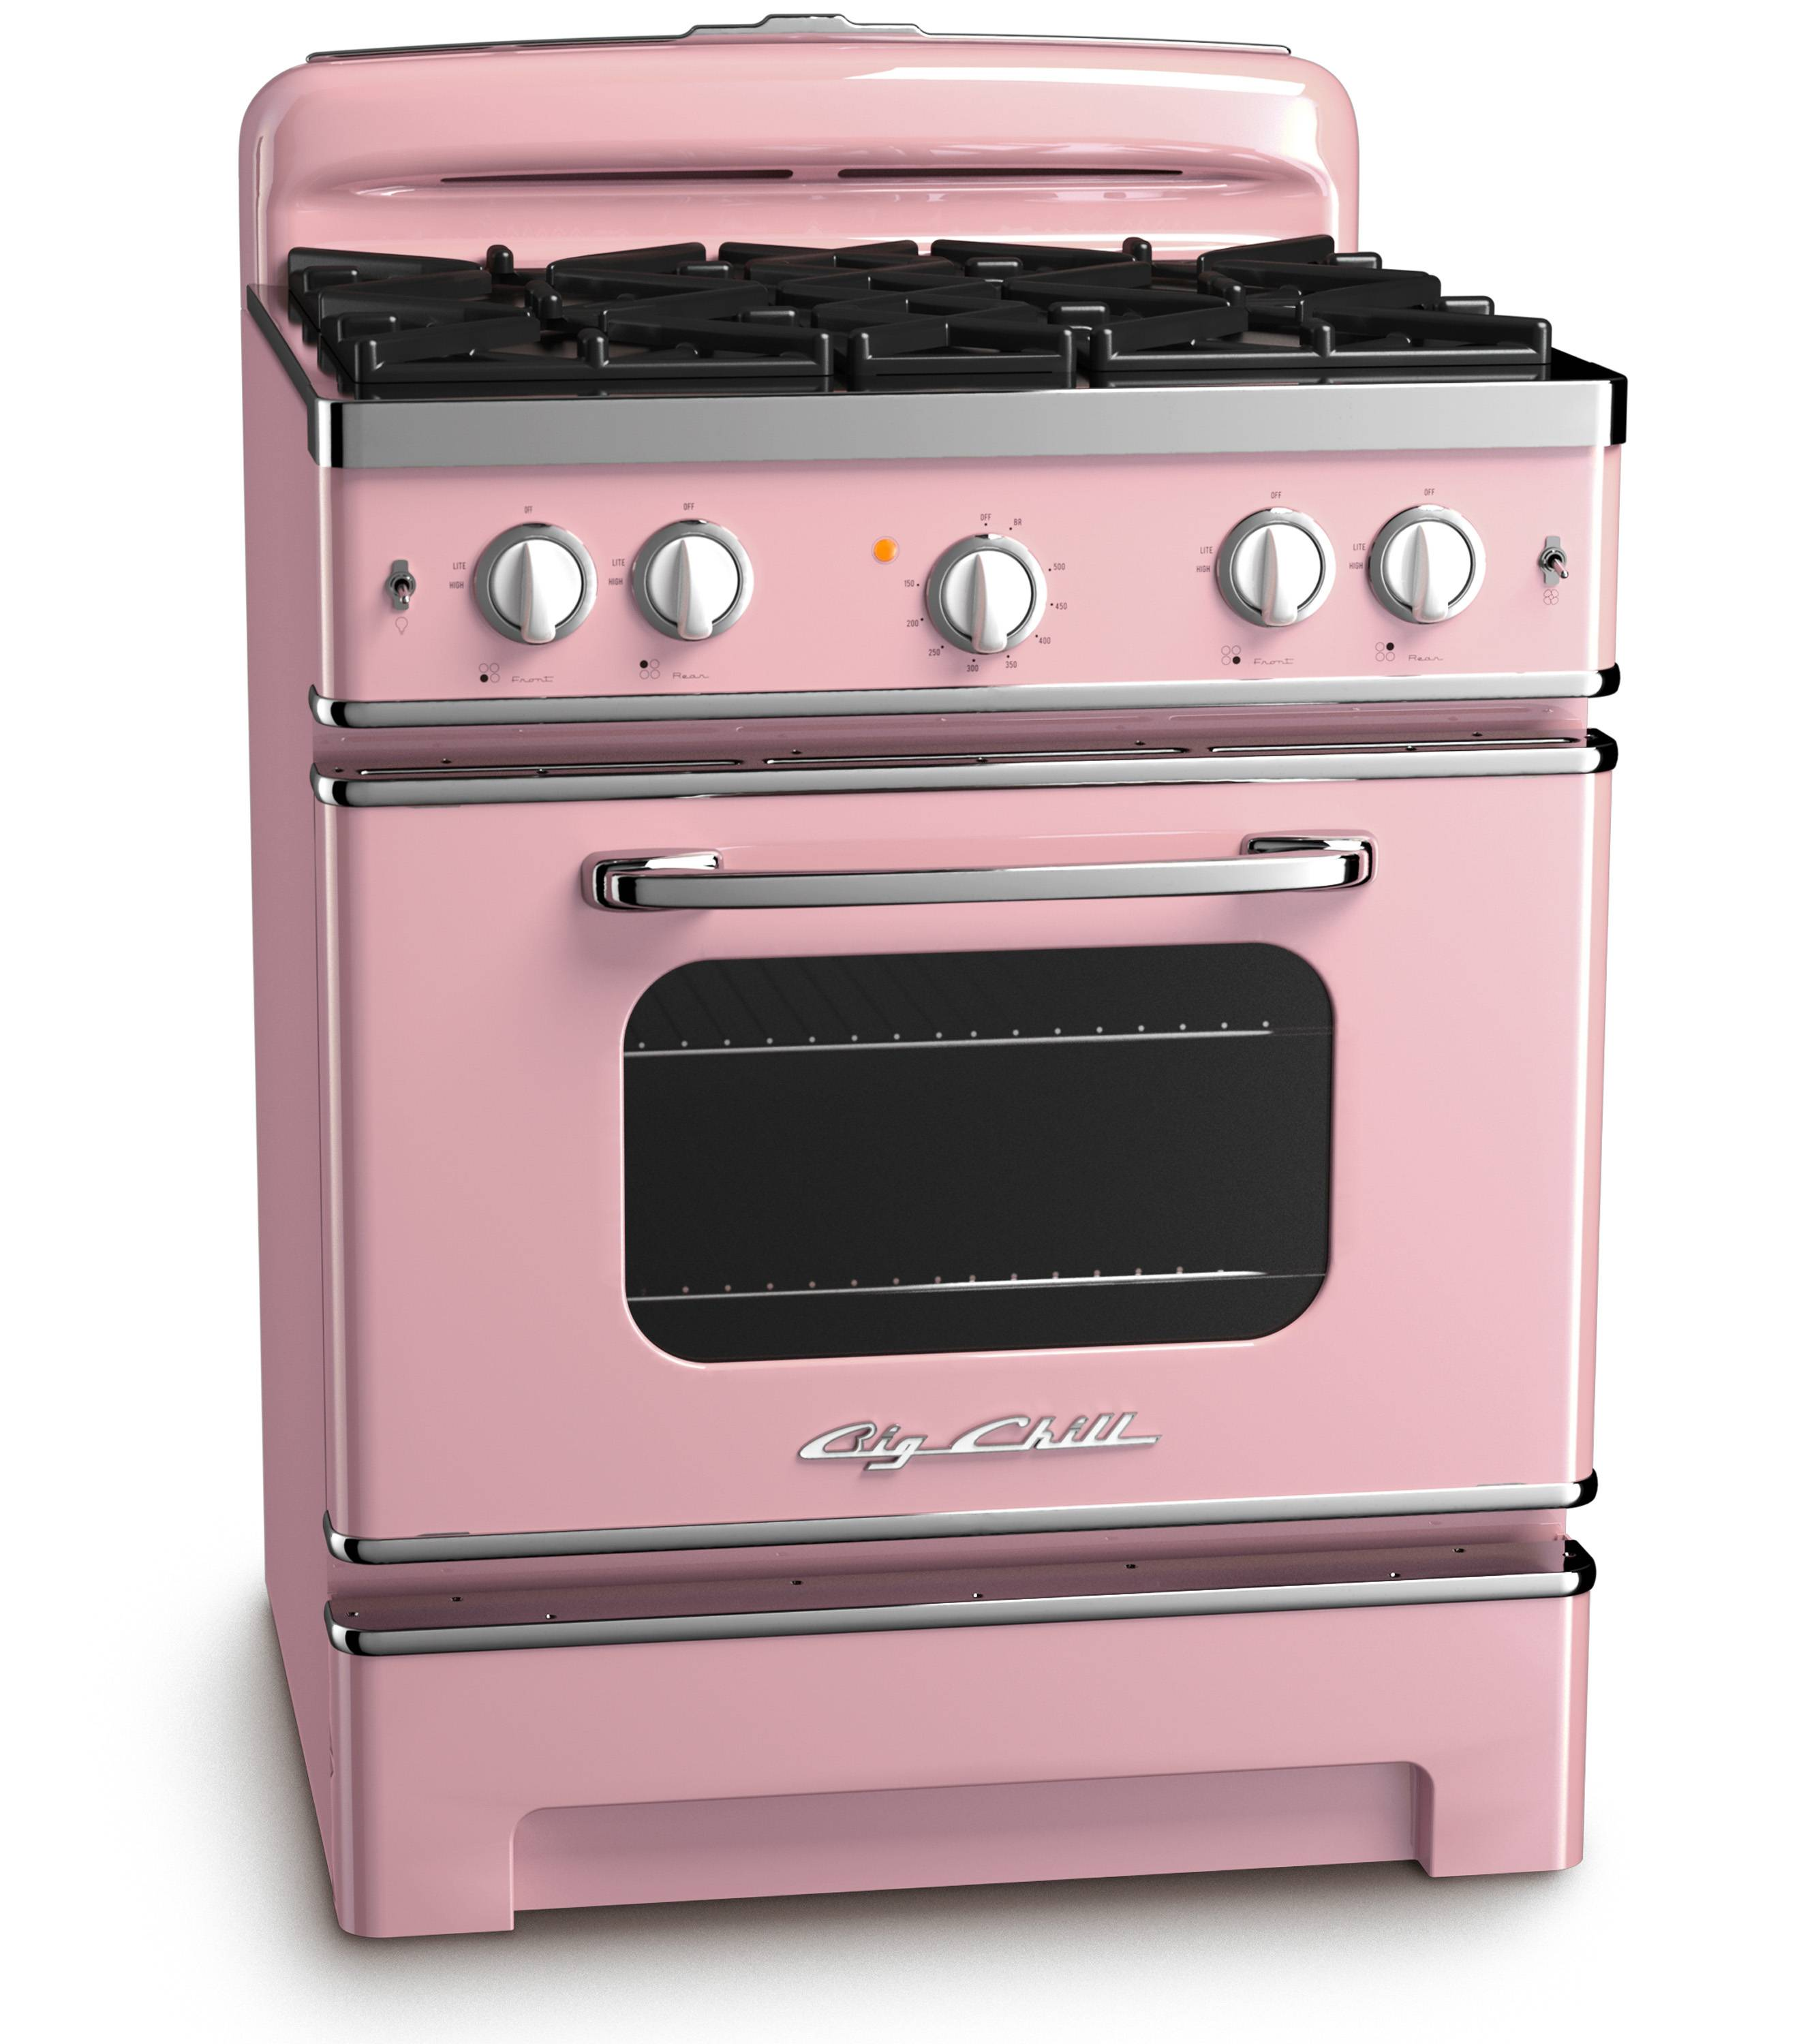 With strong color trending in kitchens, Big Chill's vibrant hues in fridges, ovens -- like this one in pink lemonade -- and range hoods hit the style mark. As a pop of color in an otherwise low key kitchen, or as part of an overall exuberant space, appliances like these, particularly with some retro details, stand out from the standard stainless offerings.